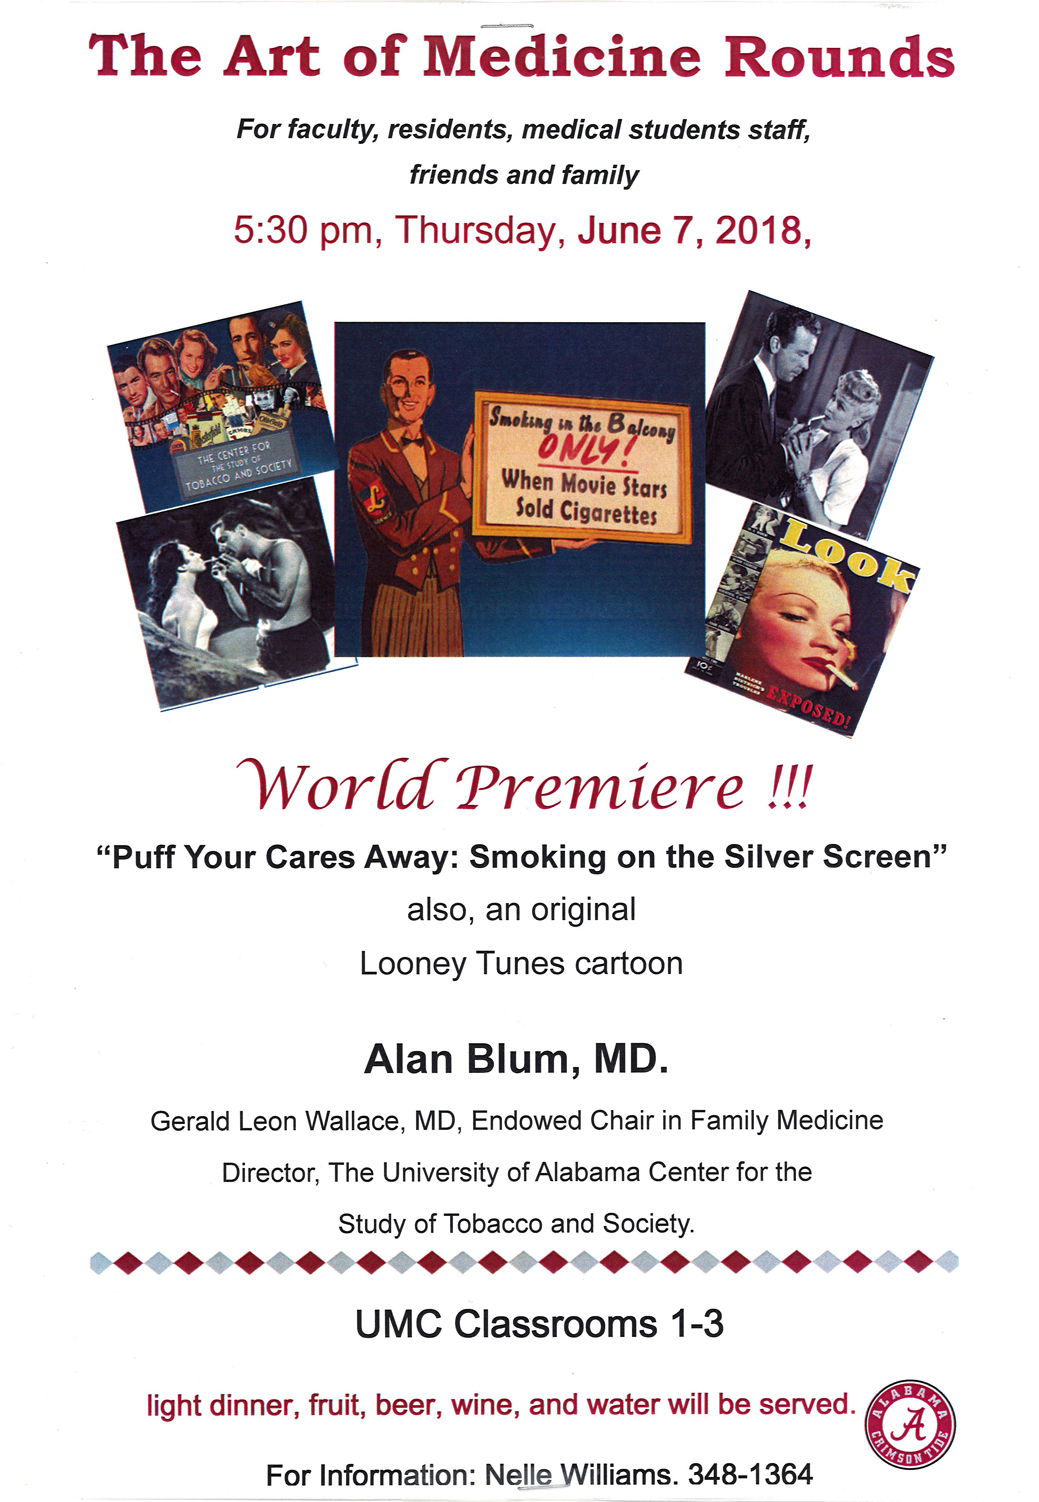 The Art of Medicien Rounds World premire puff your cares away smoking on the silver screen